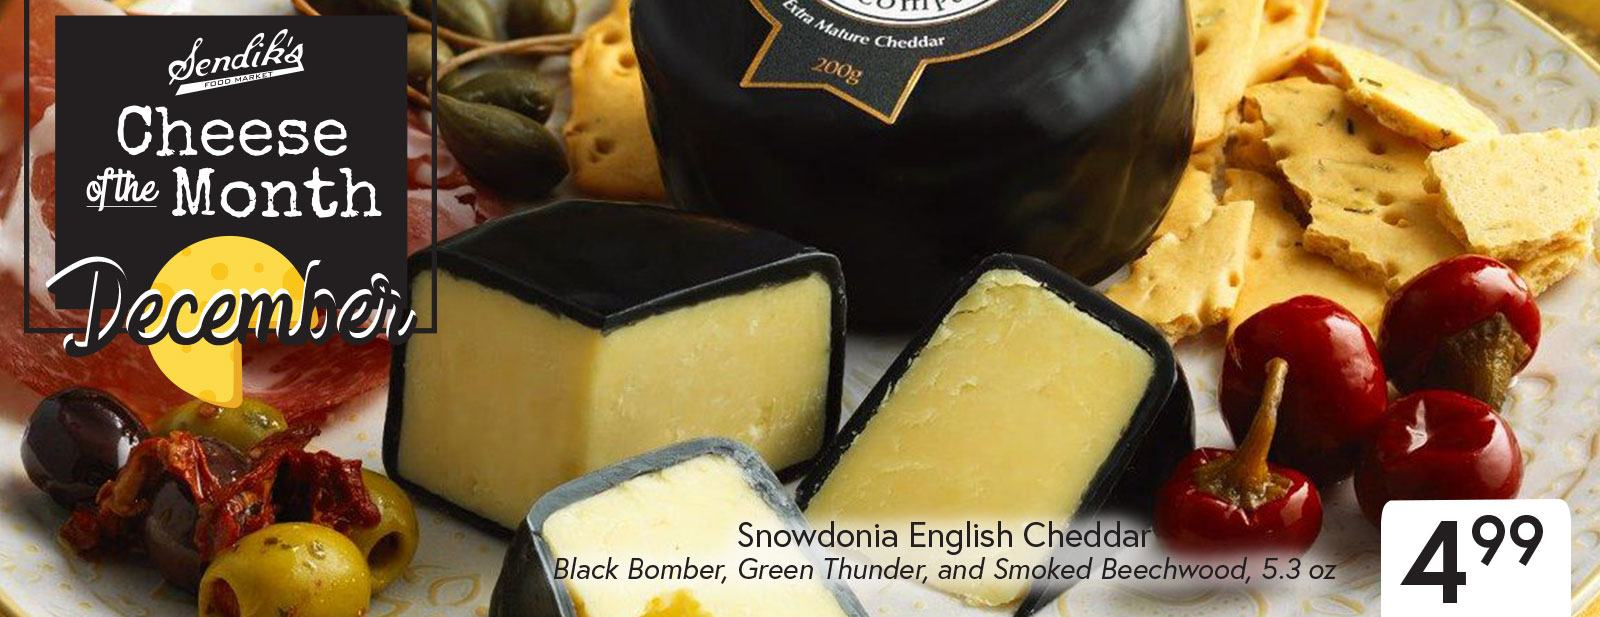 Cheese of the Month - Snowdonia English Cheddar $4.99  5.3 oz